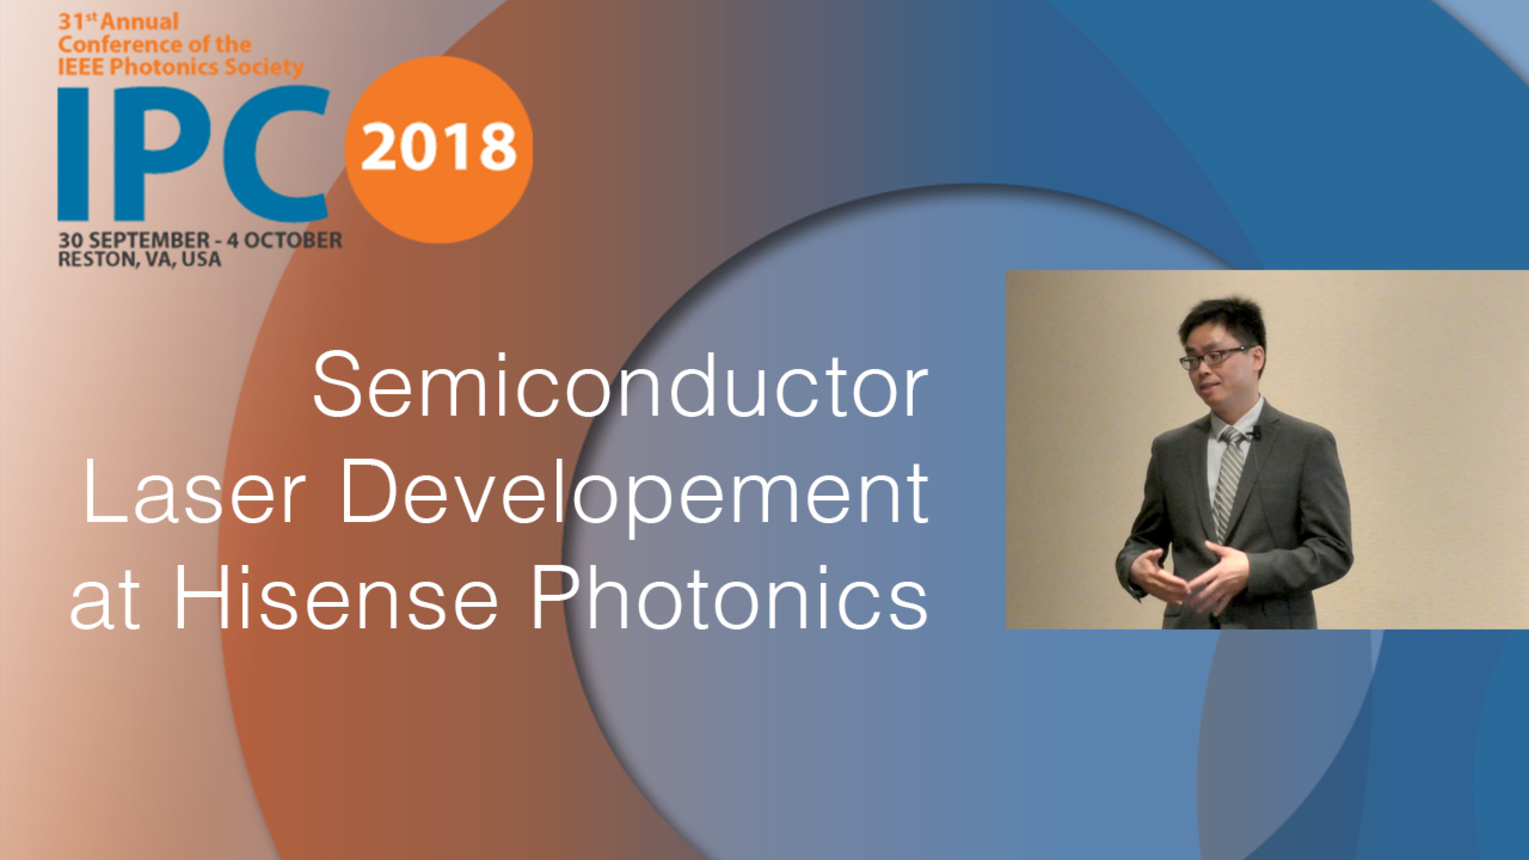 Semiconductor Laser Development at Hisense Photonics - Yanfeng Lao - IPC 2018